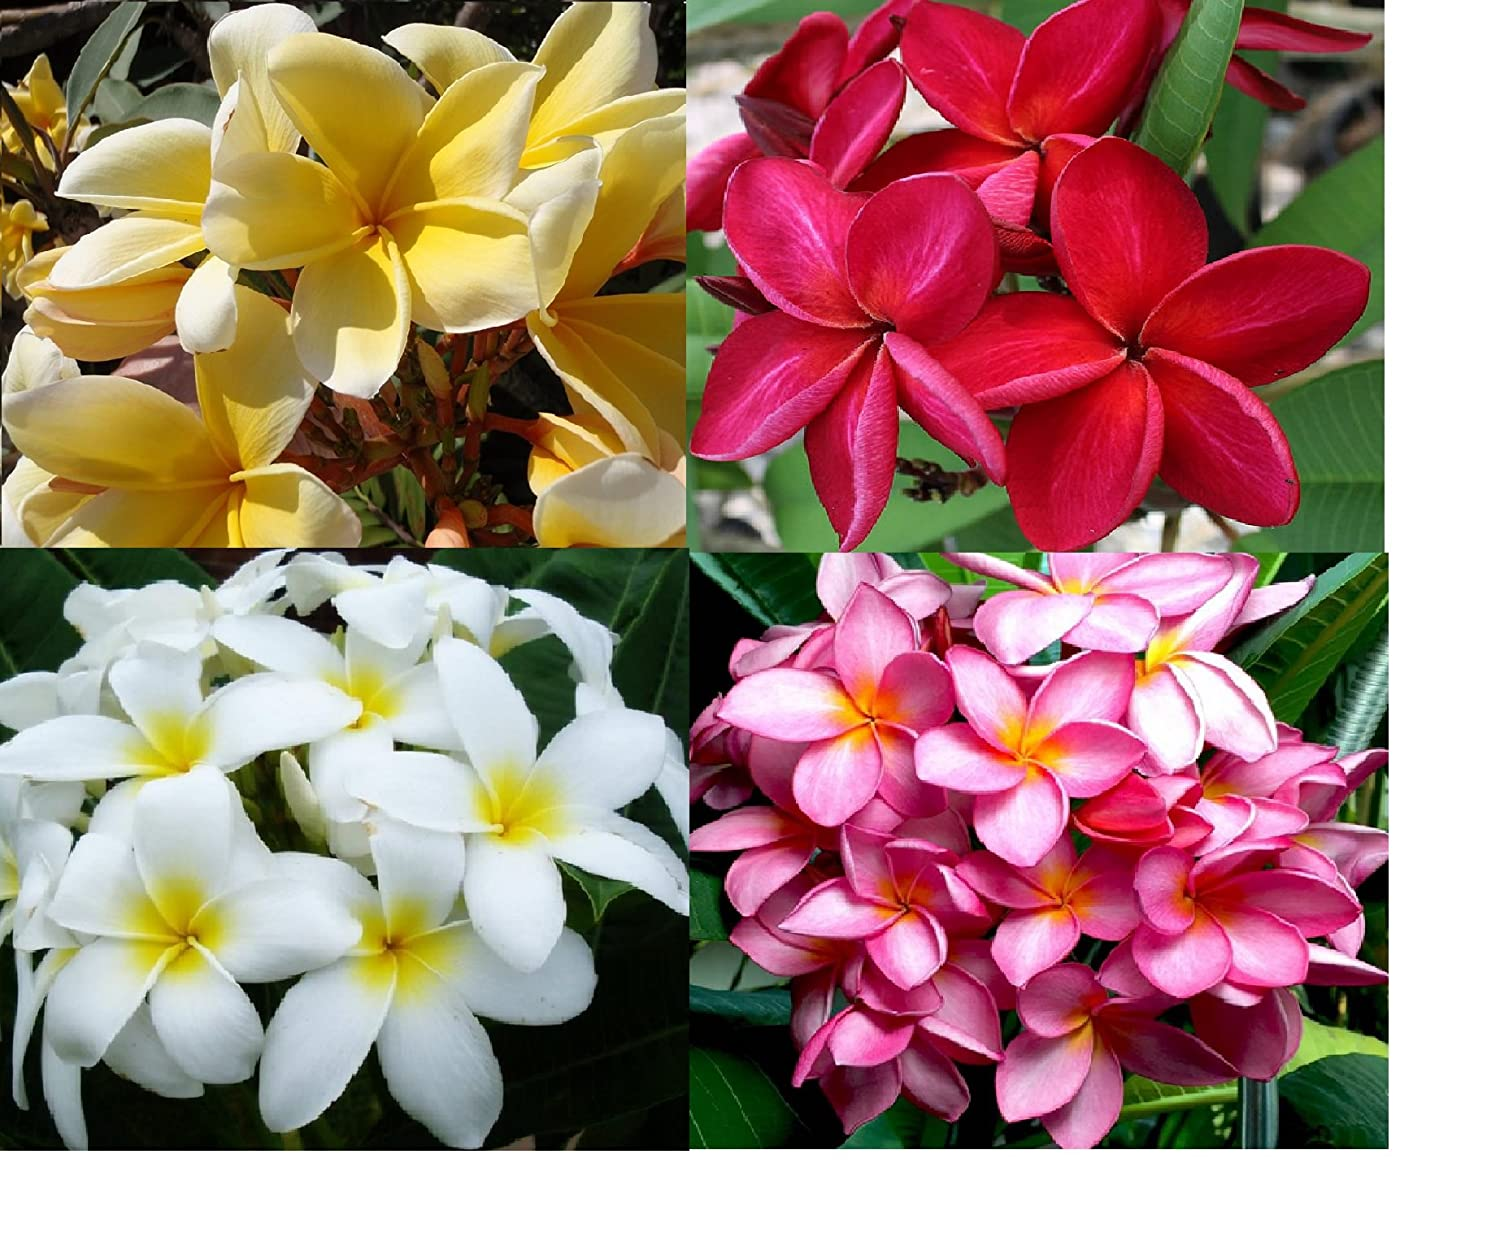 Amazon set of 4 100 hawaiian plumeria frangipani plant from a pest free certified hawaiian nursery with the proper us department of agriculture stamp garden outdoor izmirmasajfo